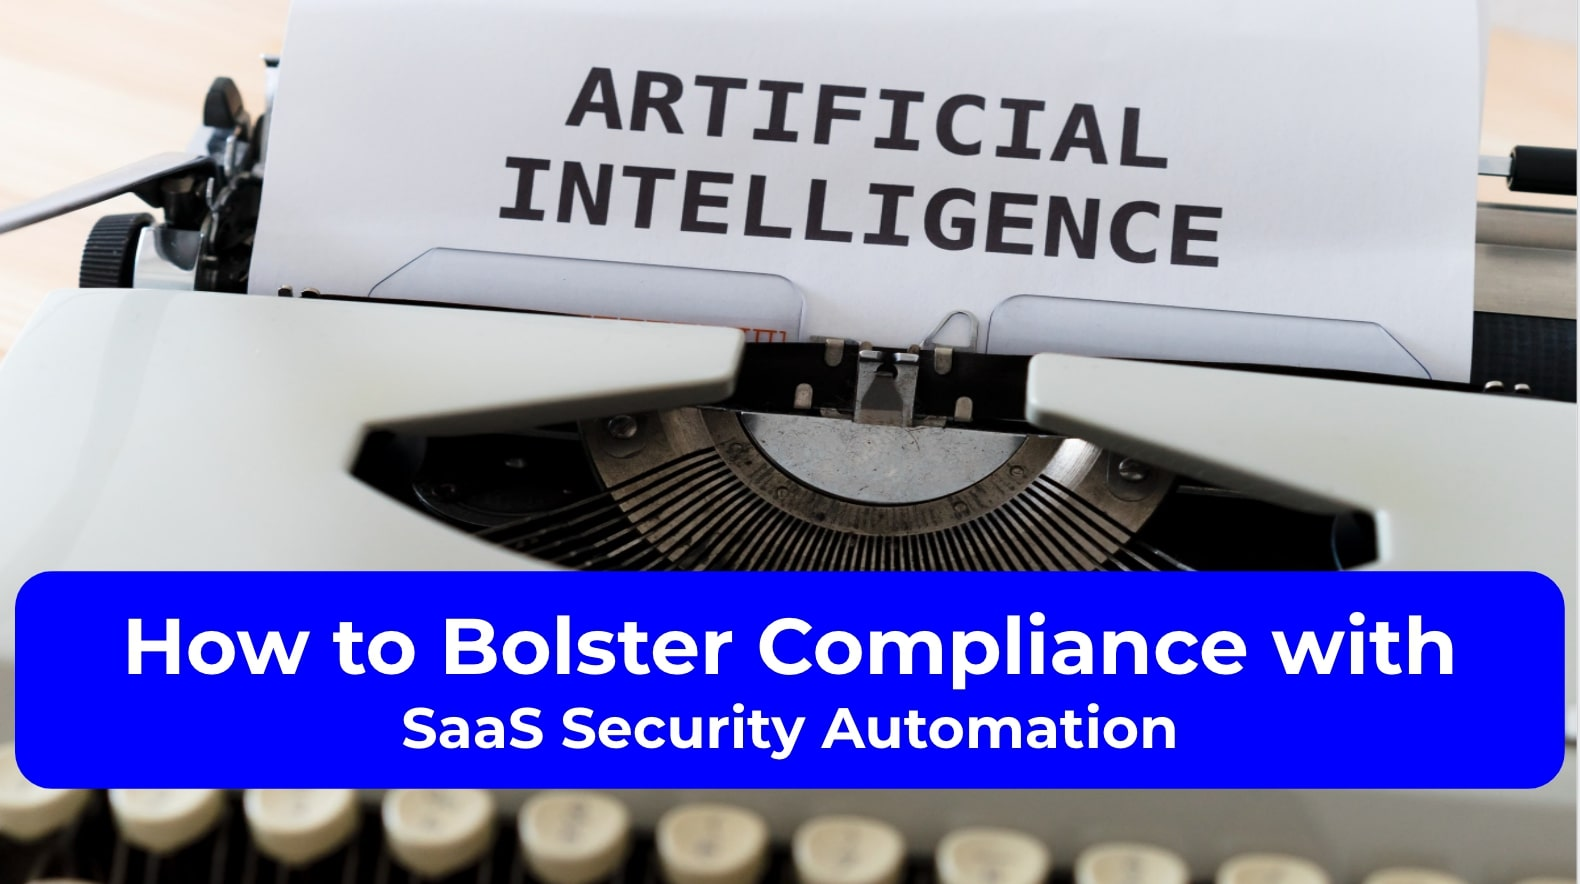 How to Bolster Compliance with SaaS Security Automation